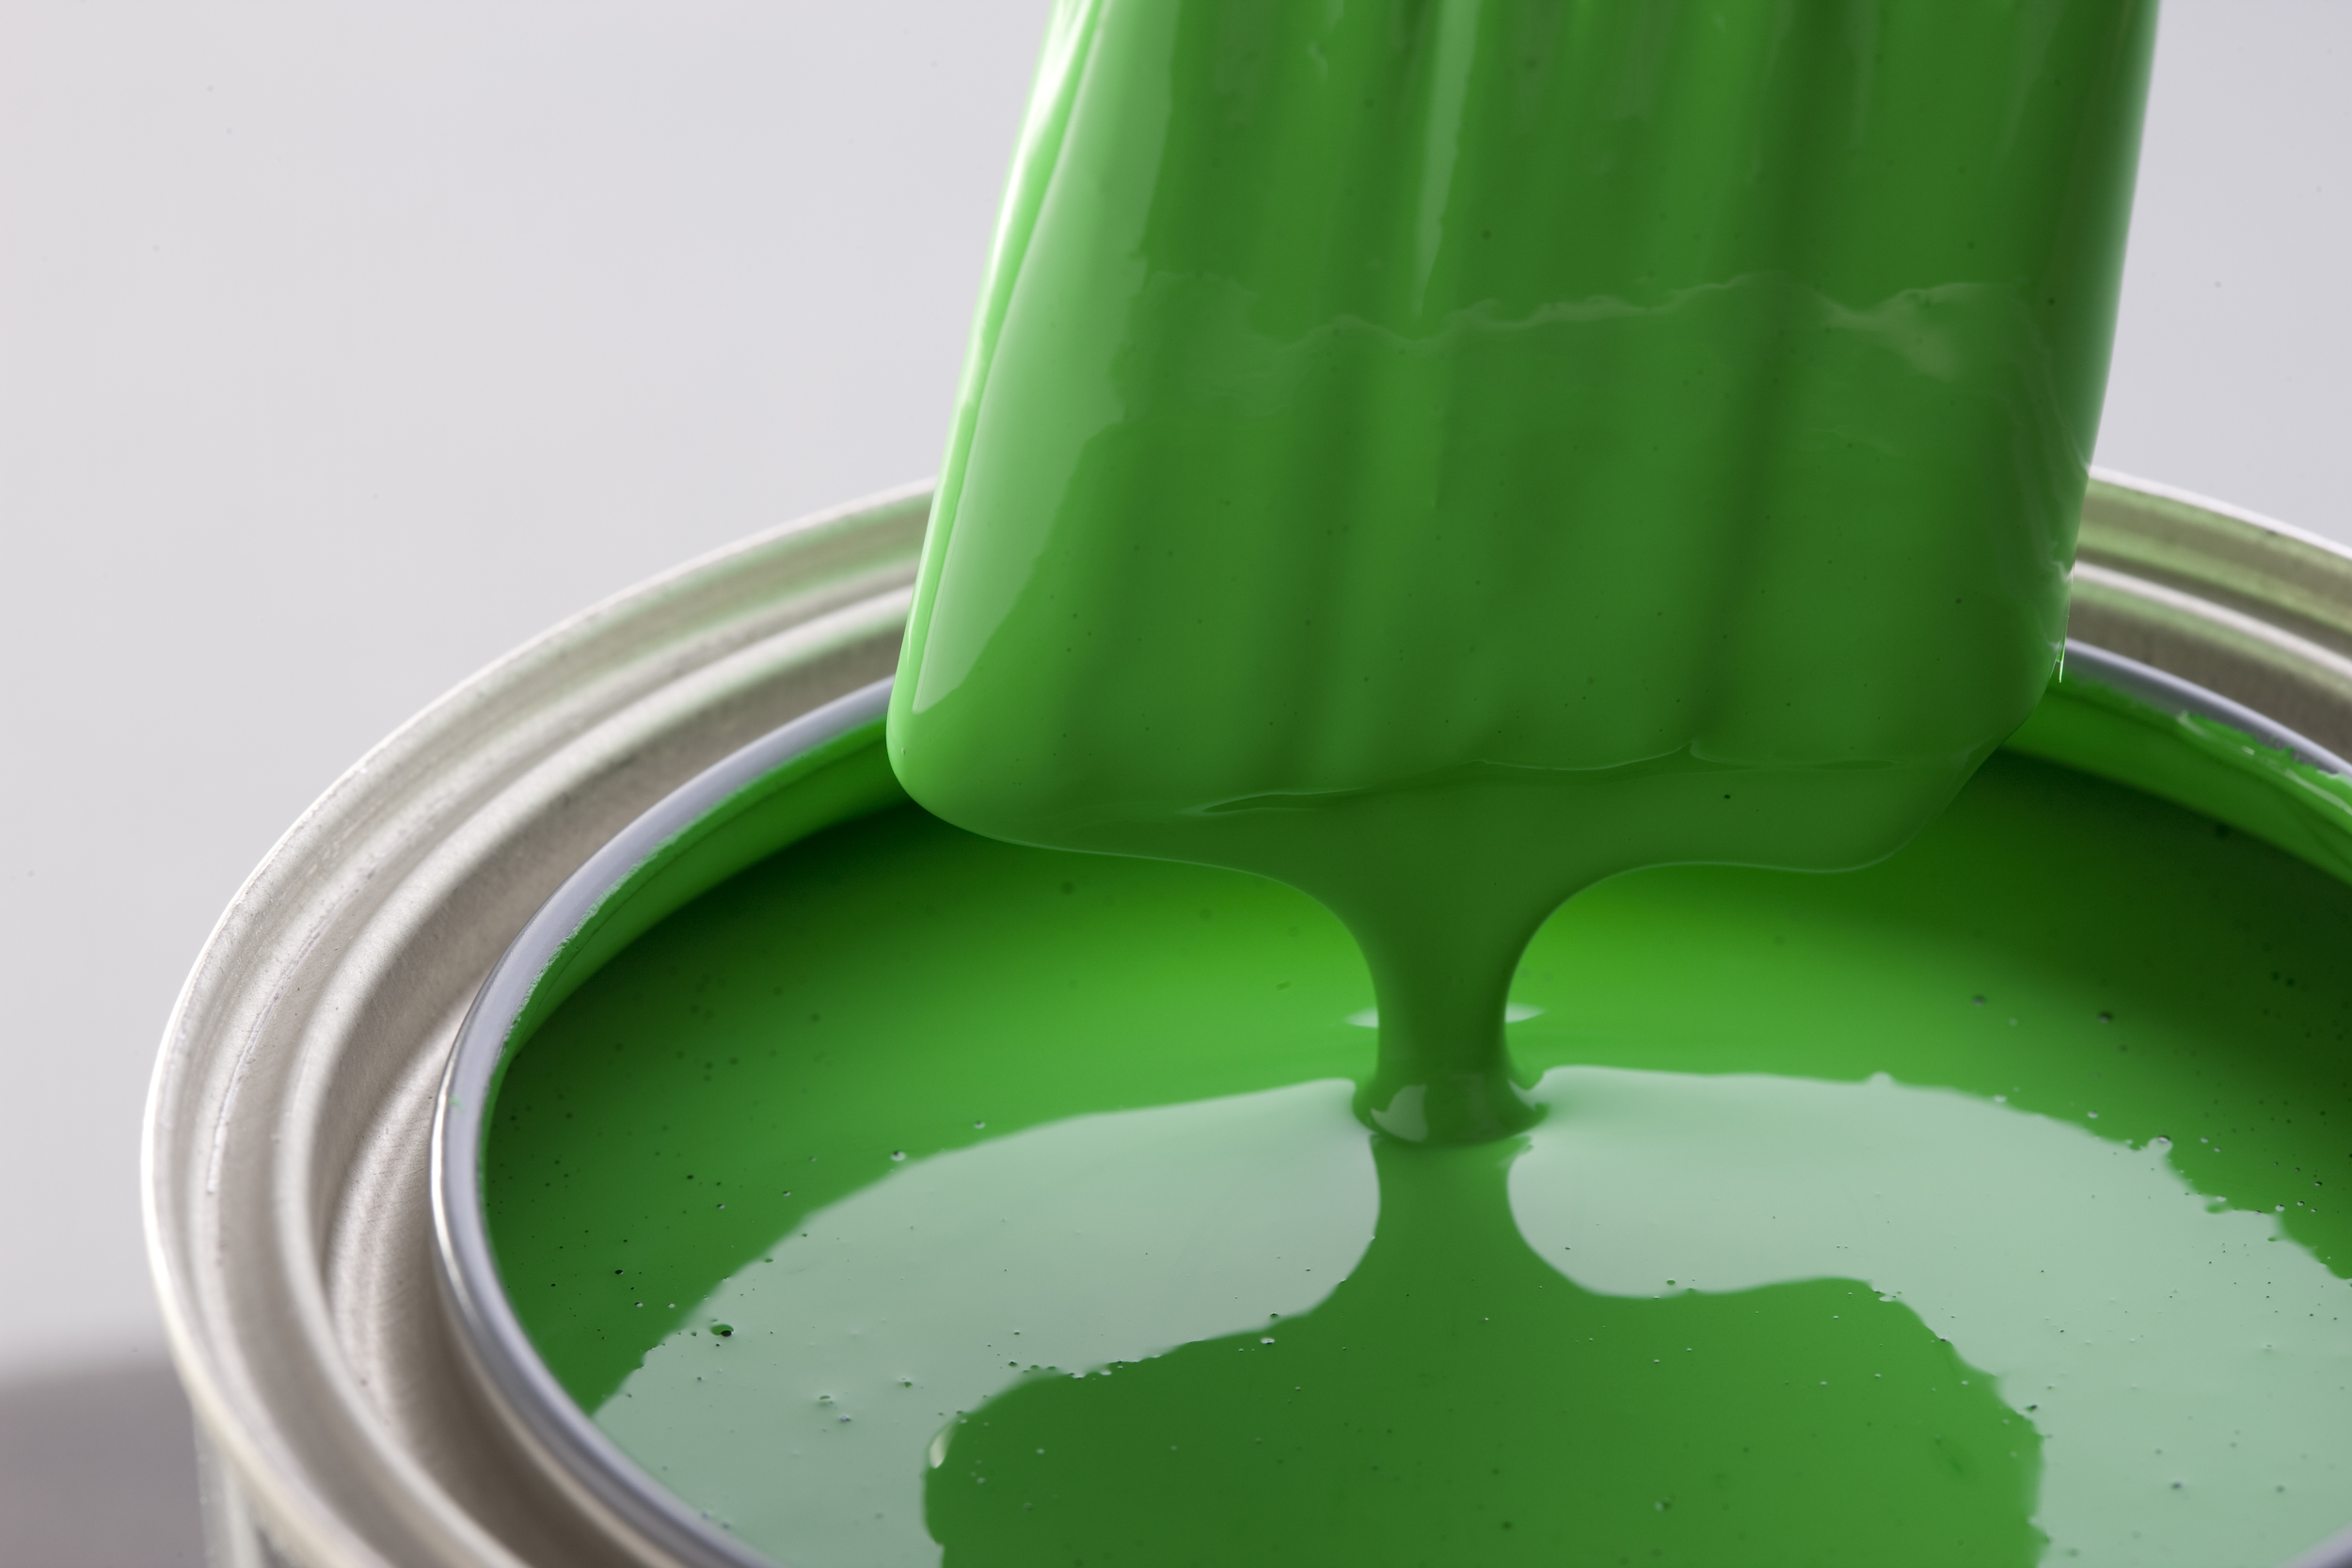 """"""" Open Soy Paint Can """" BY  United Soybean Board  IS LICENSED UNDER  CC BY 2.0 ."""